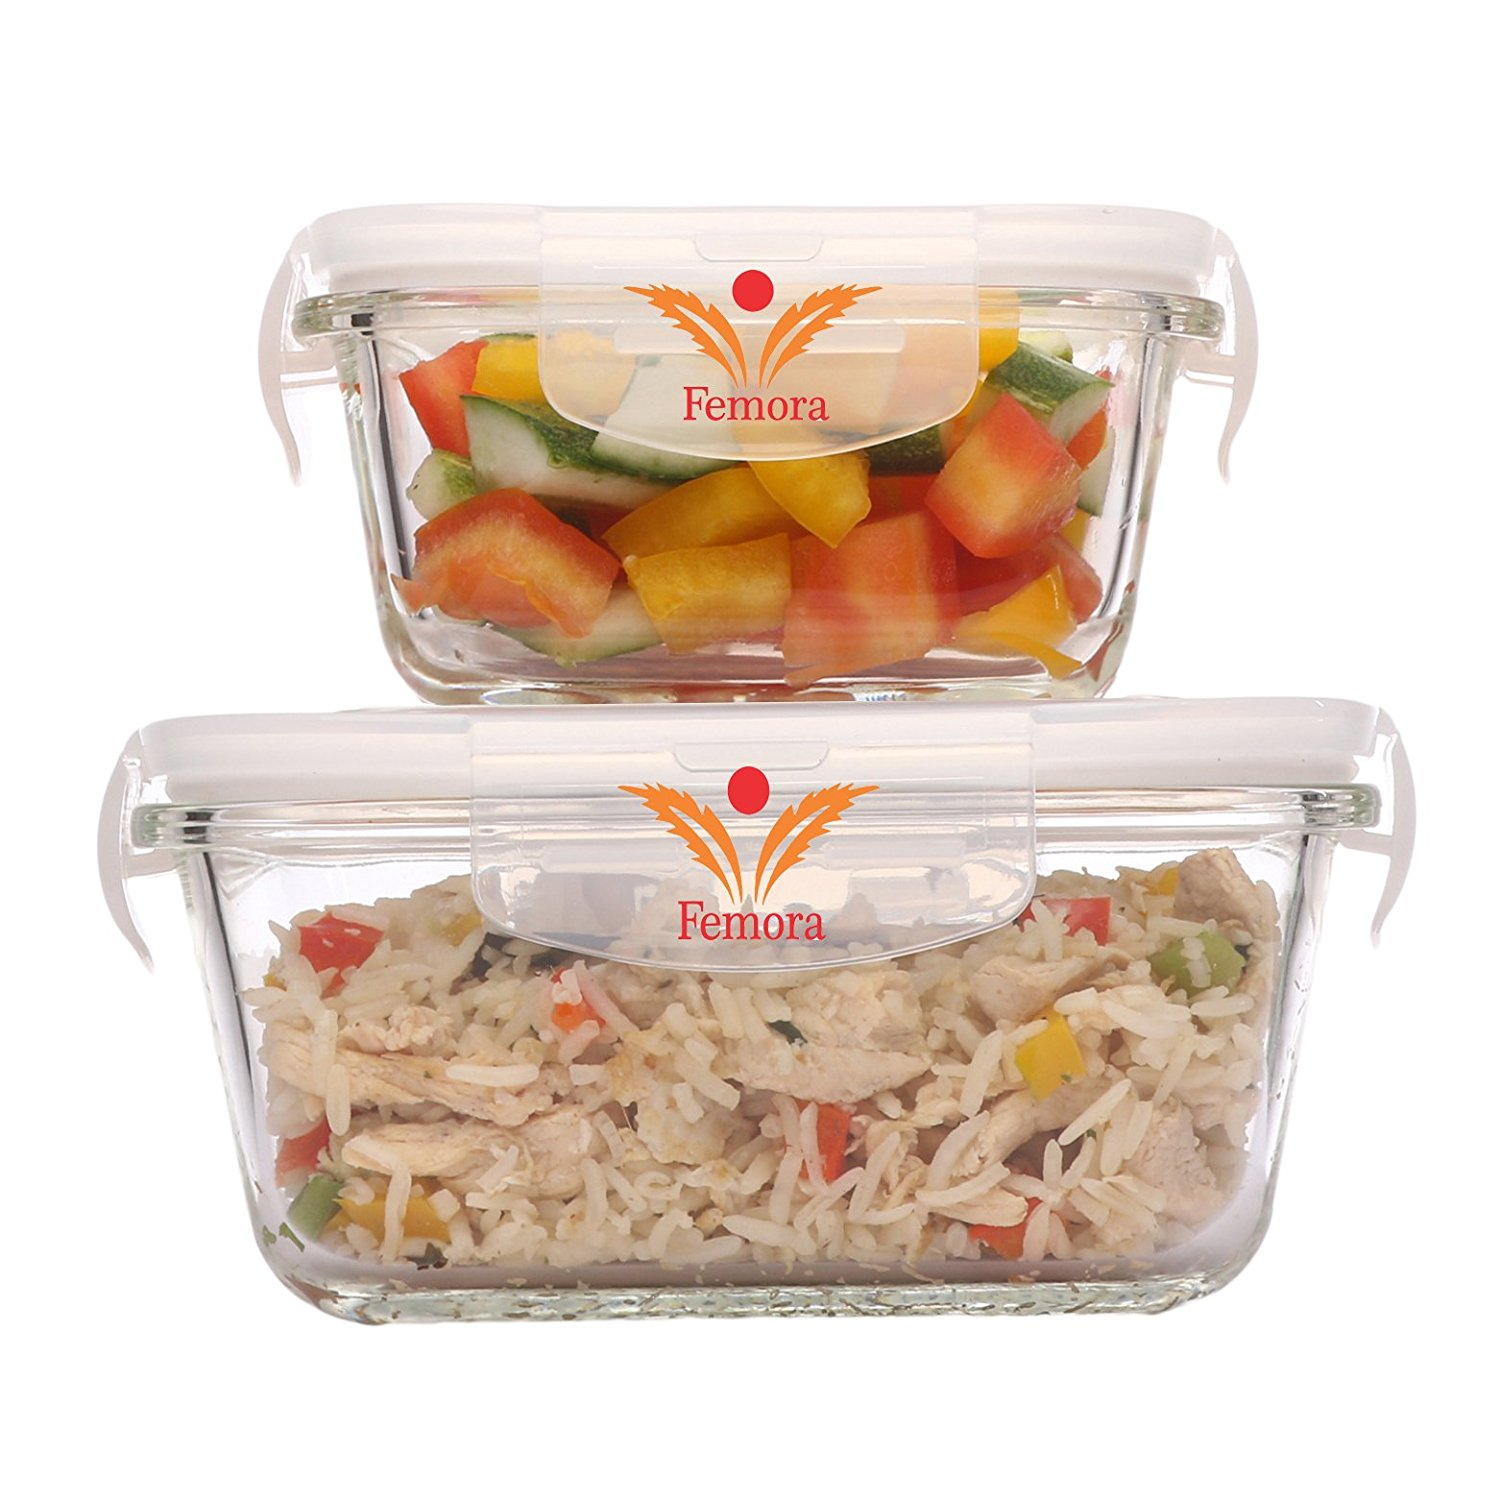 Femora Borosilicate Glass Square Container with Air Vent Lid 300 ML ,500ML Set of 2